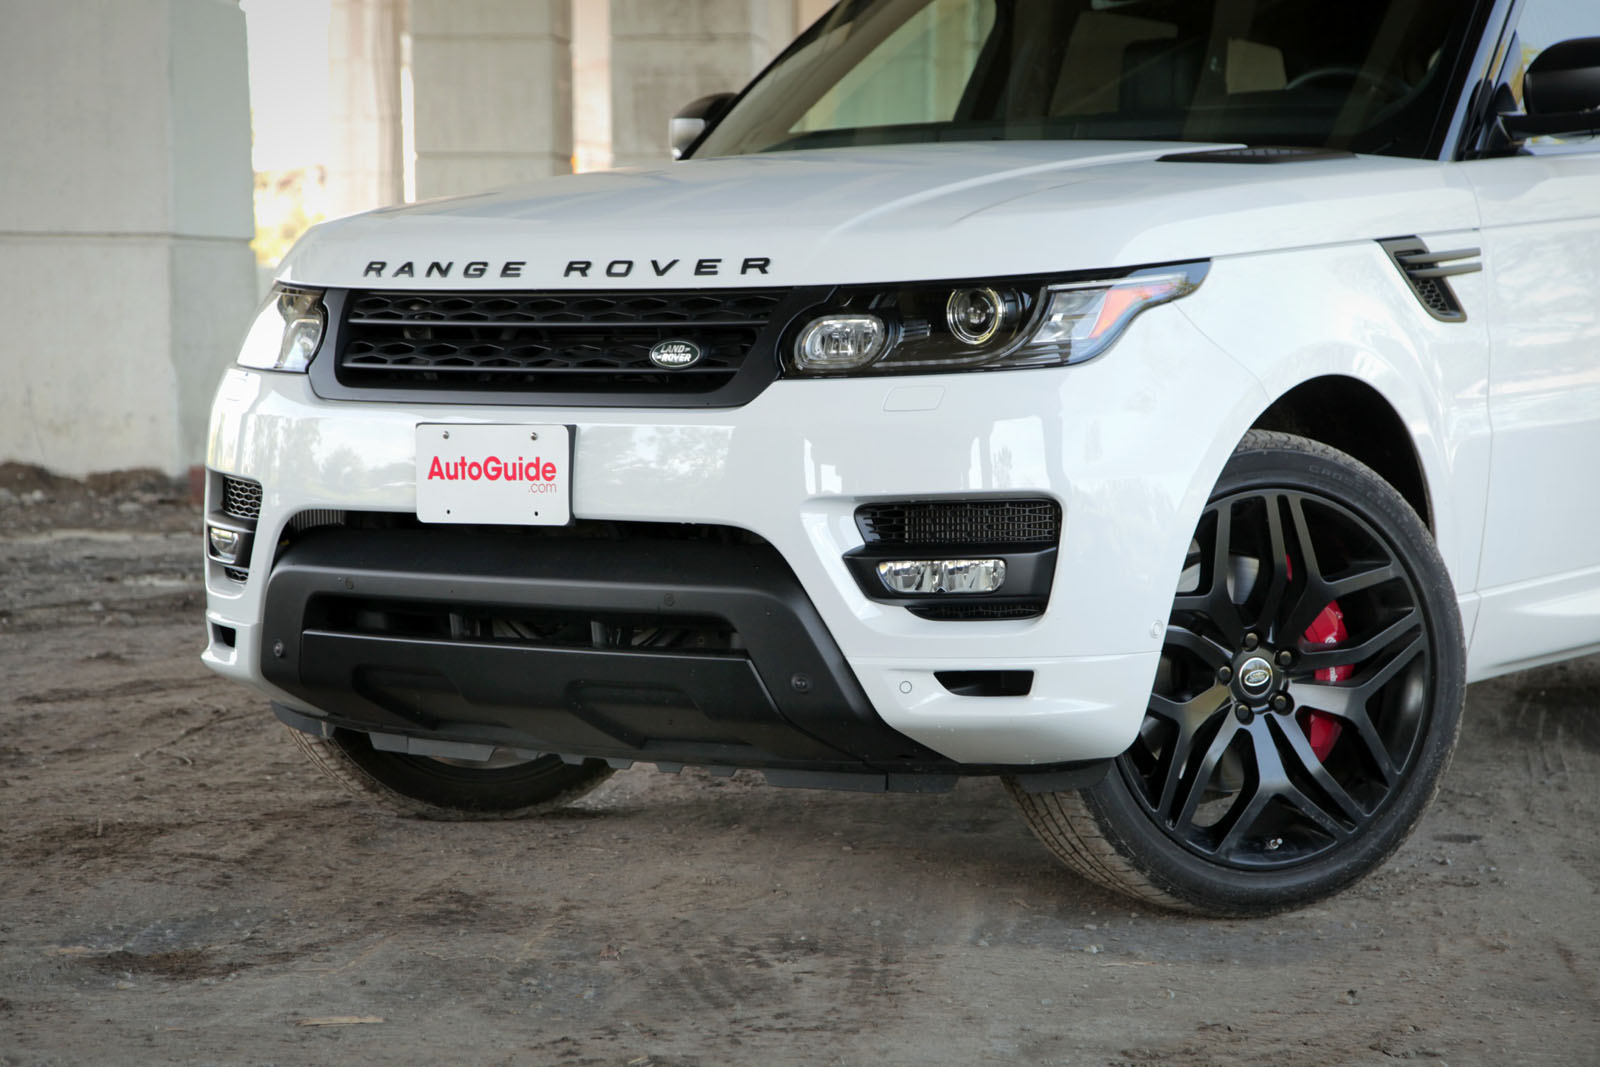 sports autobiography Find a used land rover range rover sport autobiography dynamic for sale on auto trader, today with the largest range of second hand land rover range rover sport cars across the uk, find the right car for you.